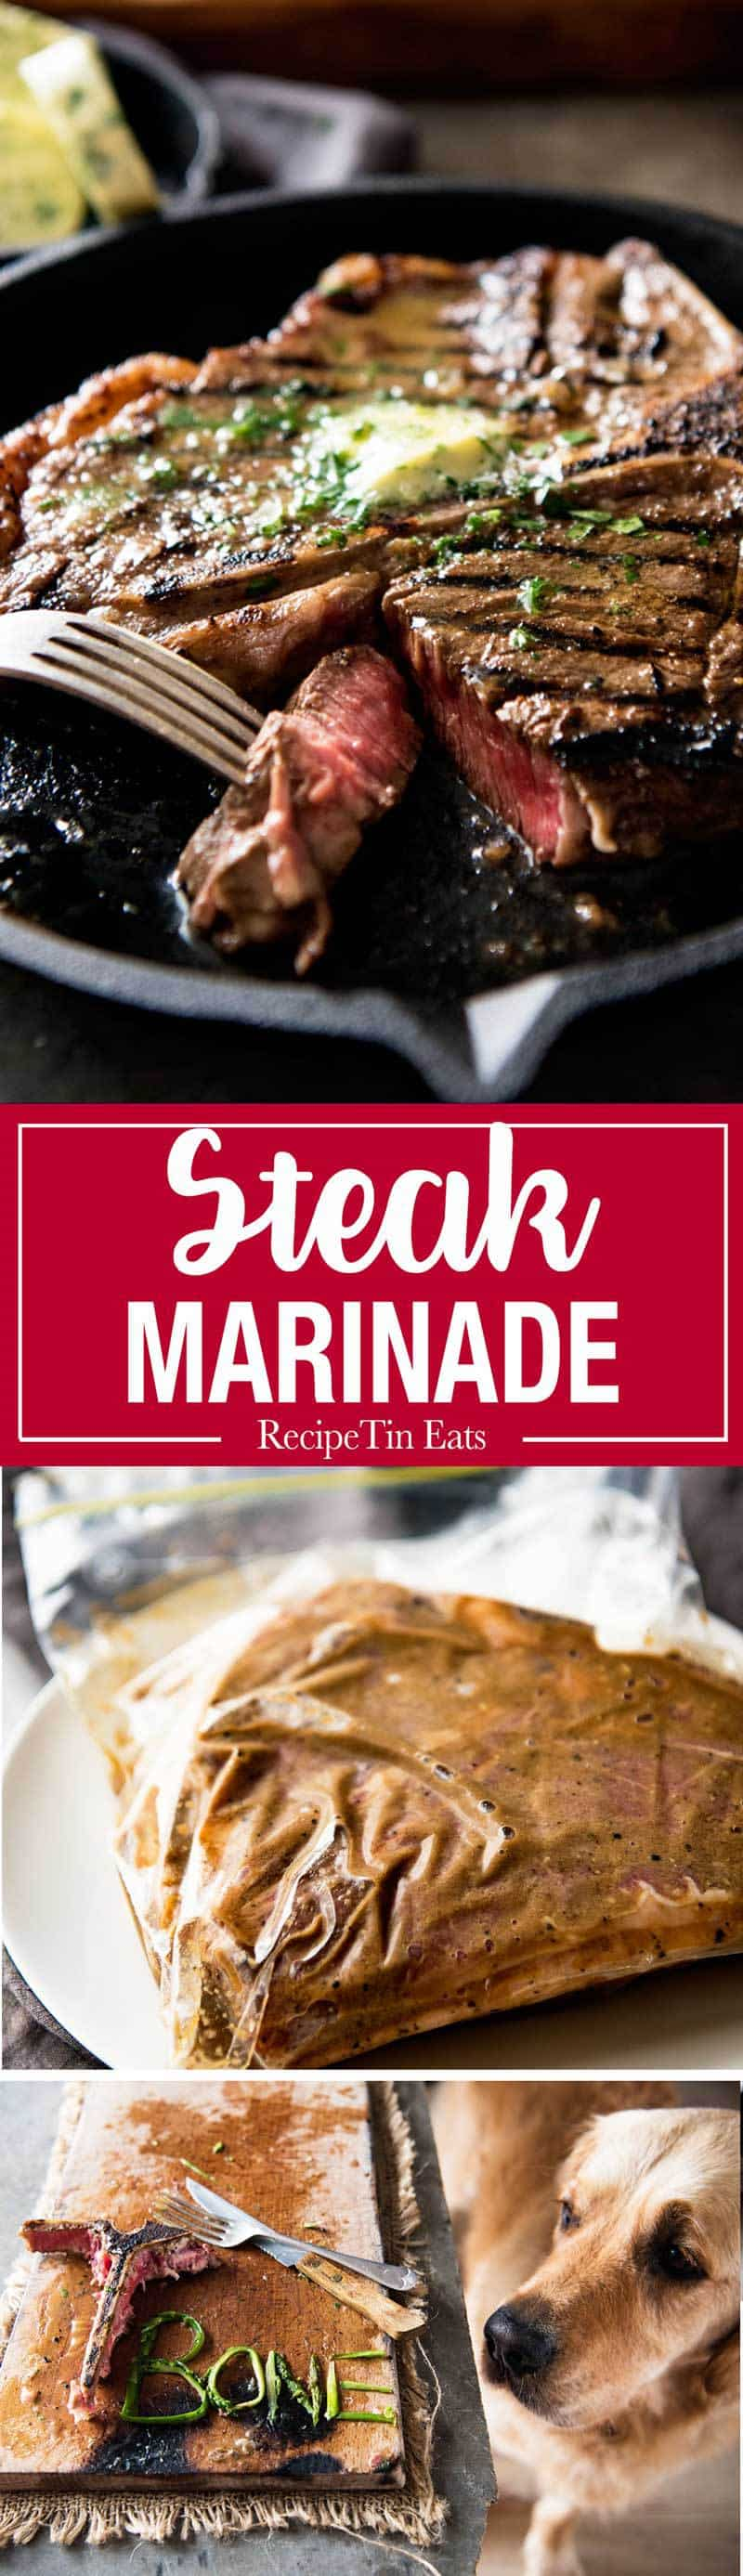 Steak Marinade - A simple, magical marinade that truly tenderises, while adding flavour AND making the steak juicy. Genius! www.recipetineats.com